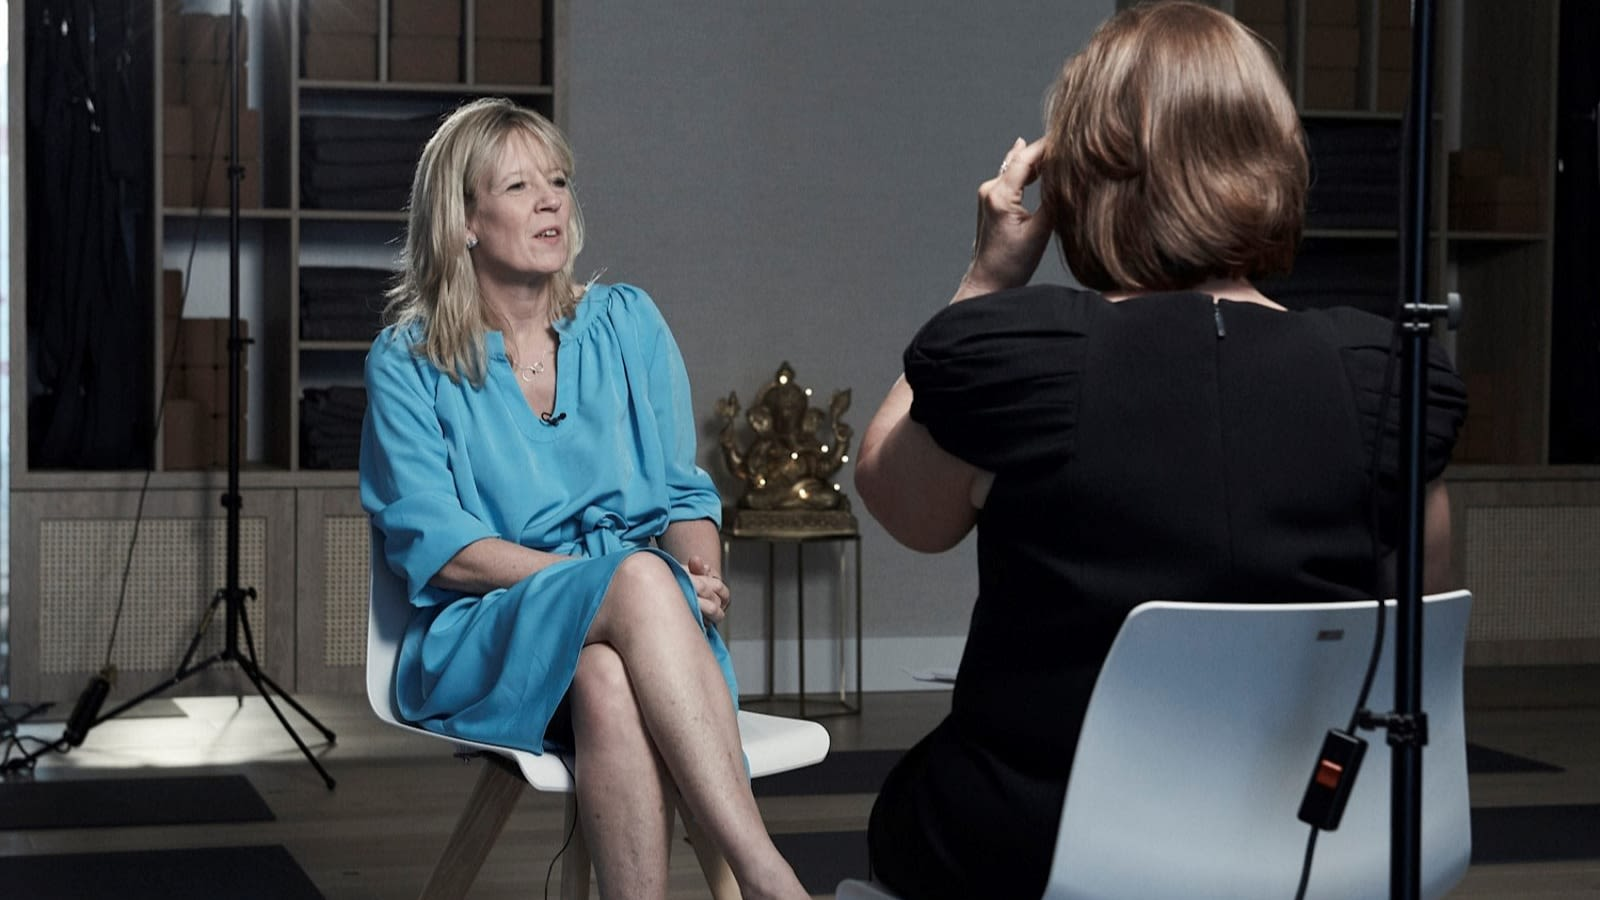 Lisa Thomas, Chief Brand Officer at Virgin, sitting on a chair facing another woman whose back is to the camera